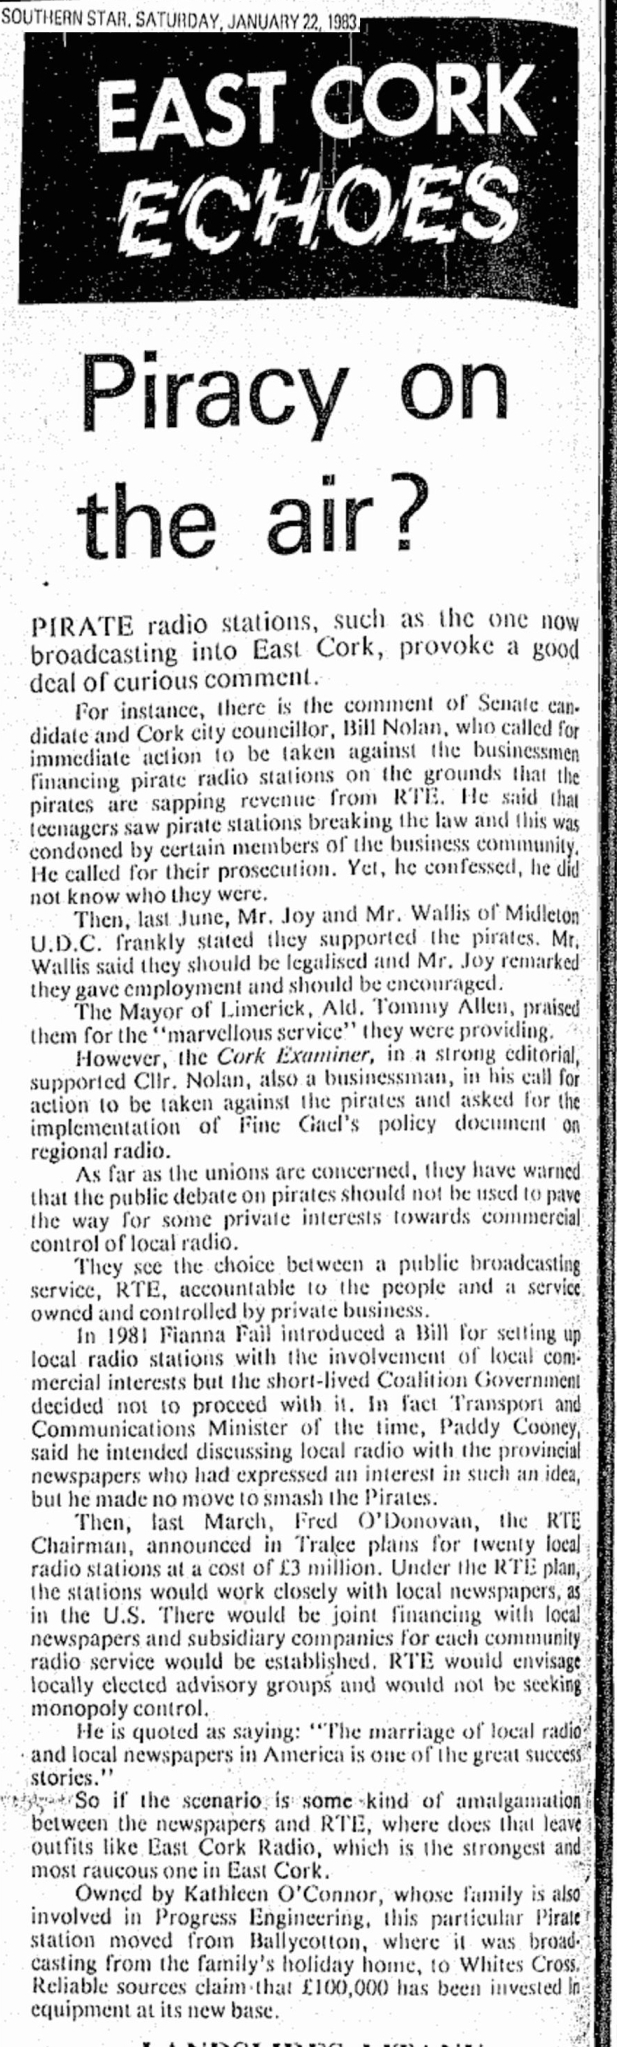 Piracy on the air was a newspaper headline from the Southern Star dated January 22nd 1983